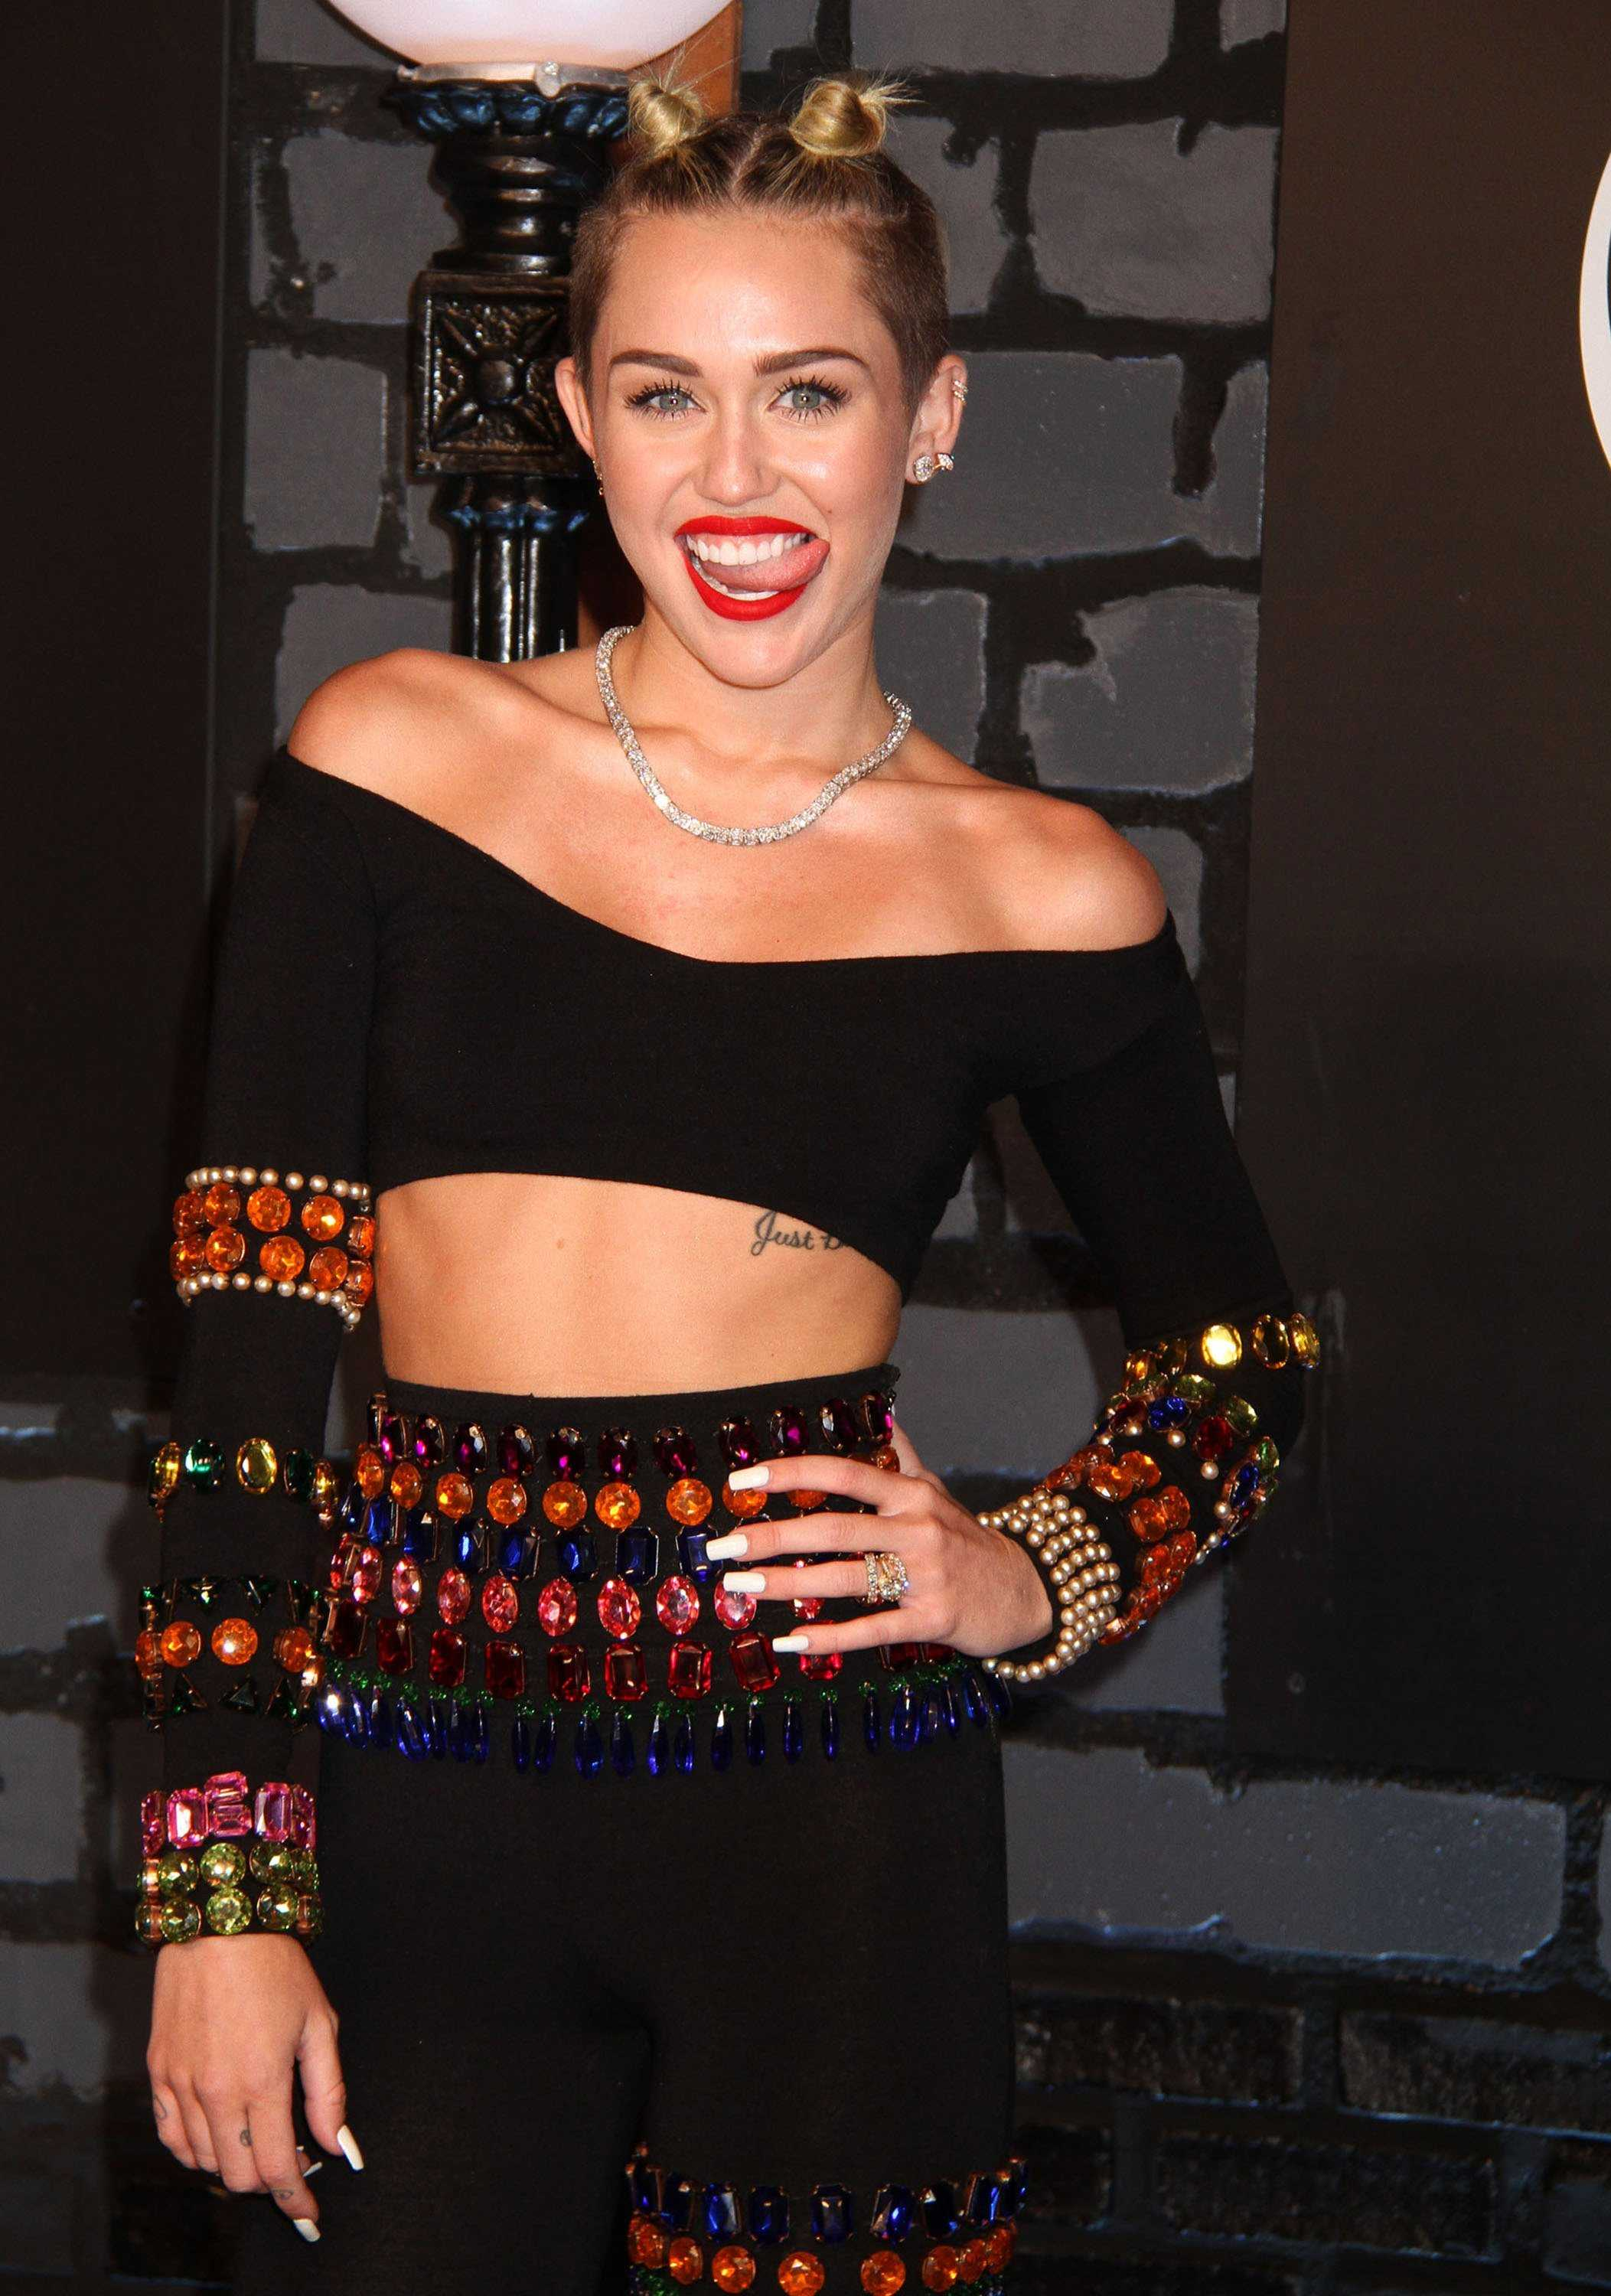 Miley Cyrus is yet again the topic of entertainment news. Sufjan Stevens decided to follow Sinead O'Connor and wrote an open letter to Cyrus, this time criticizing her grammar.